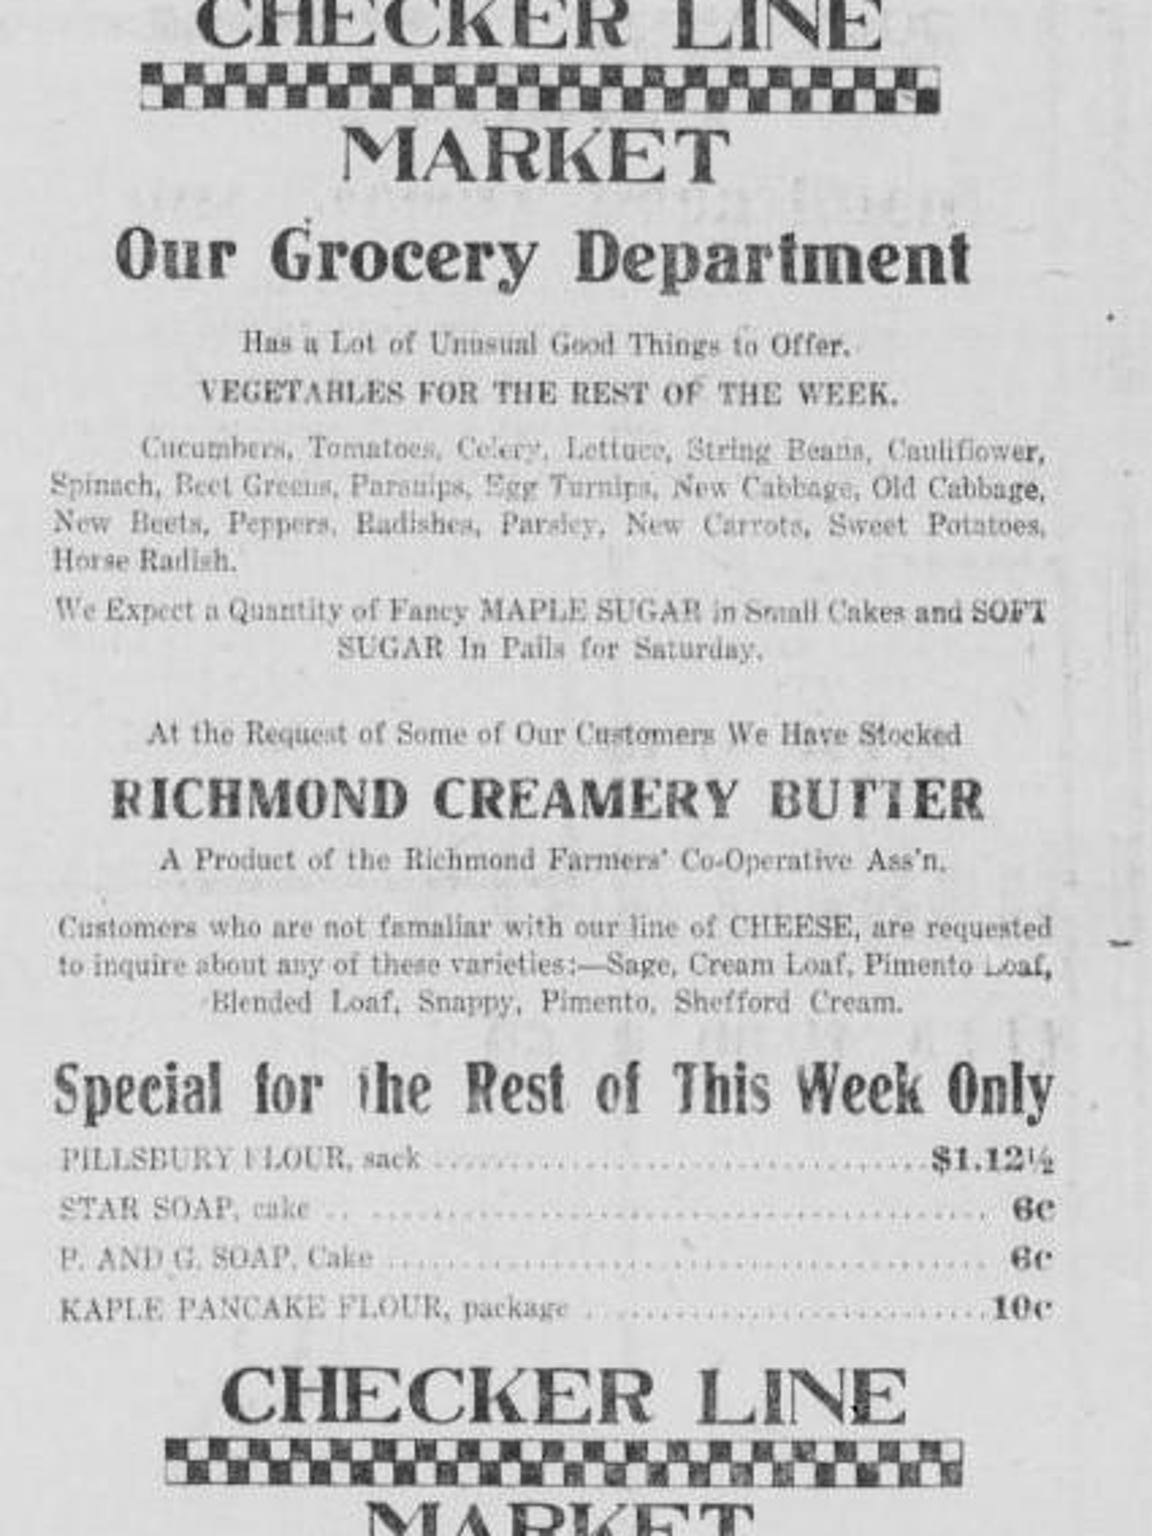 Advertisement featuring Richmond Creamery Butter from